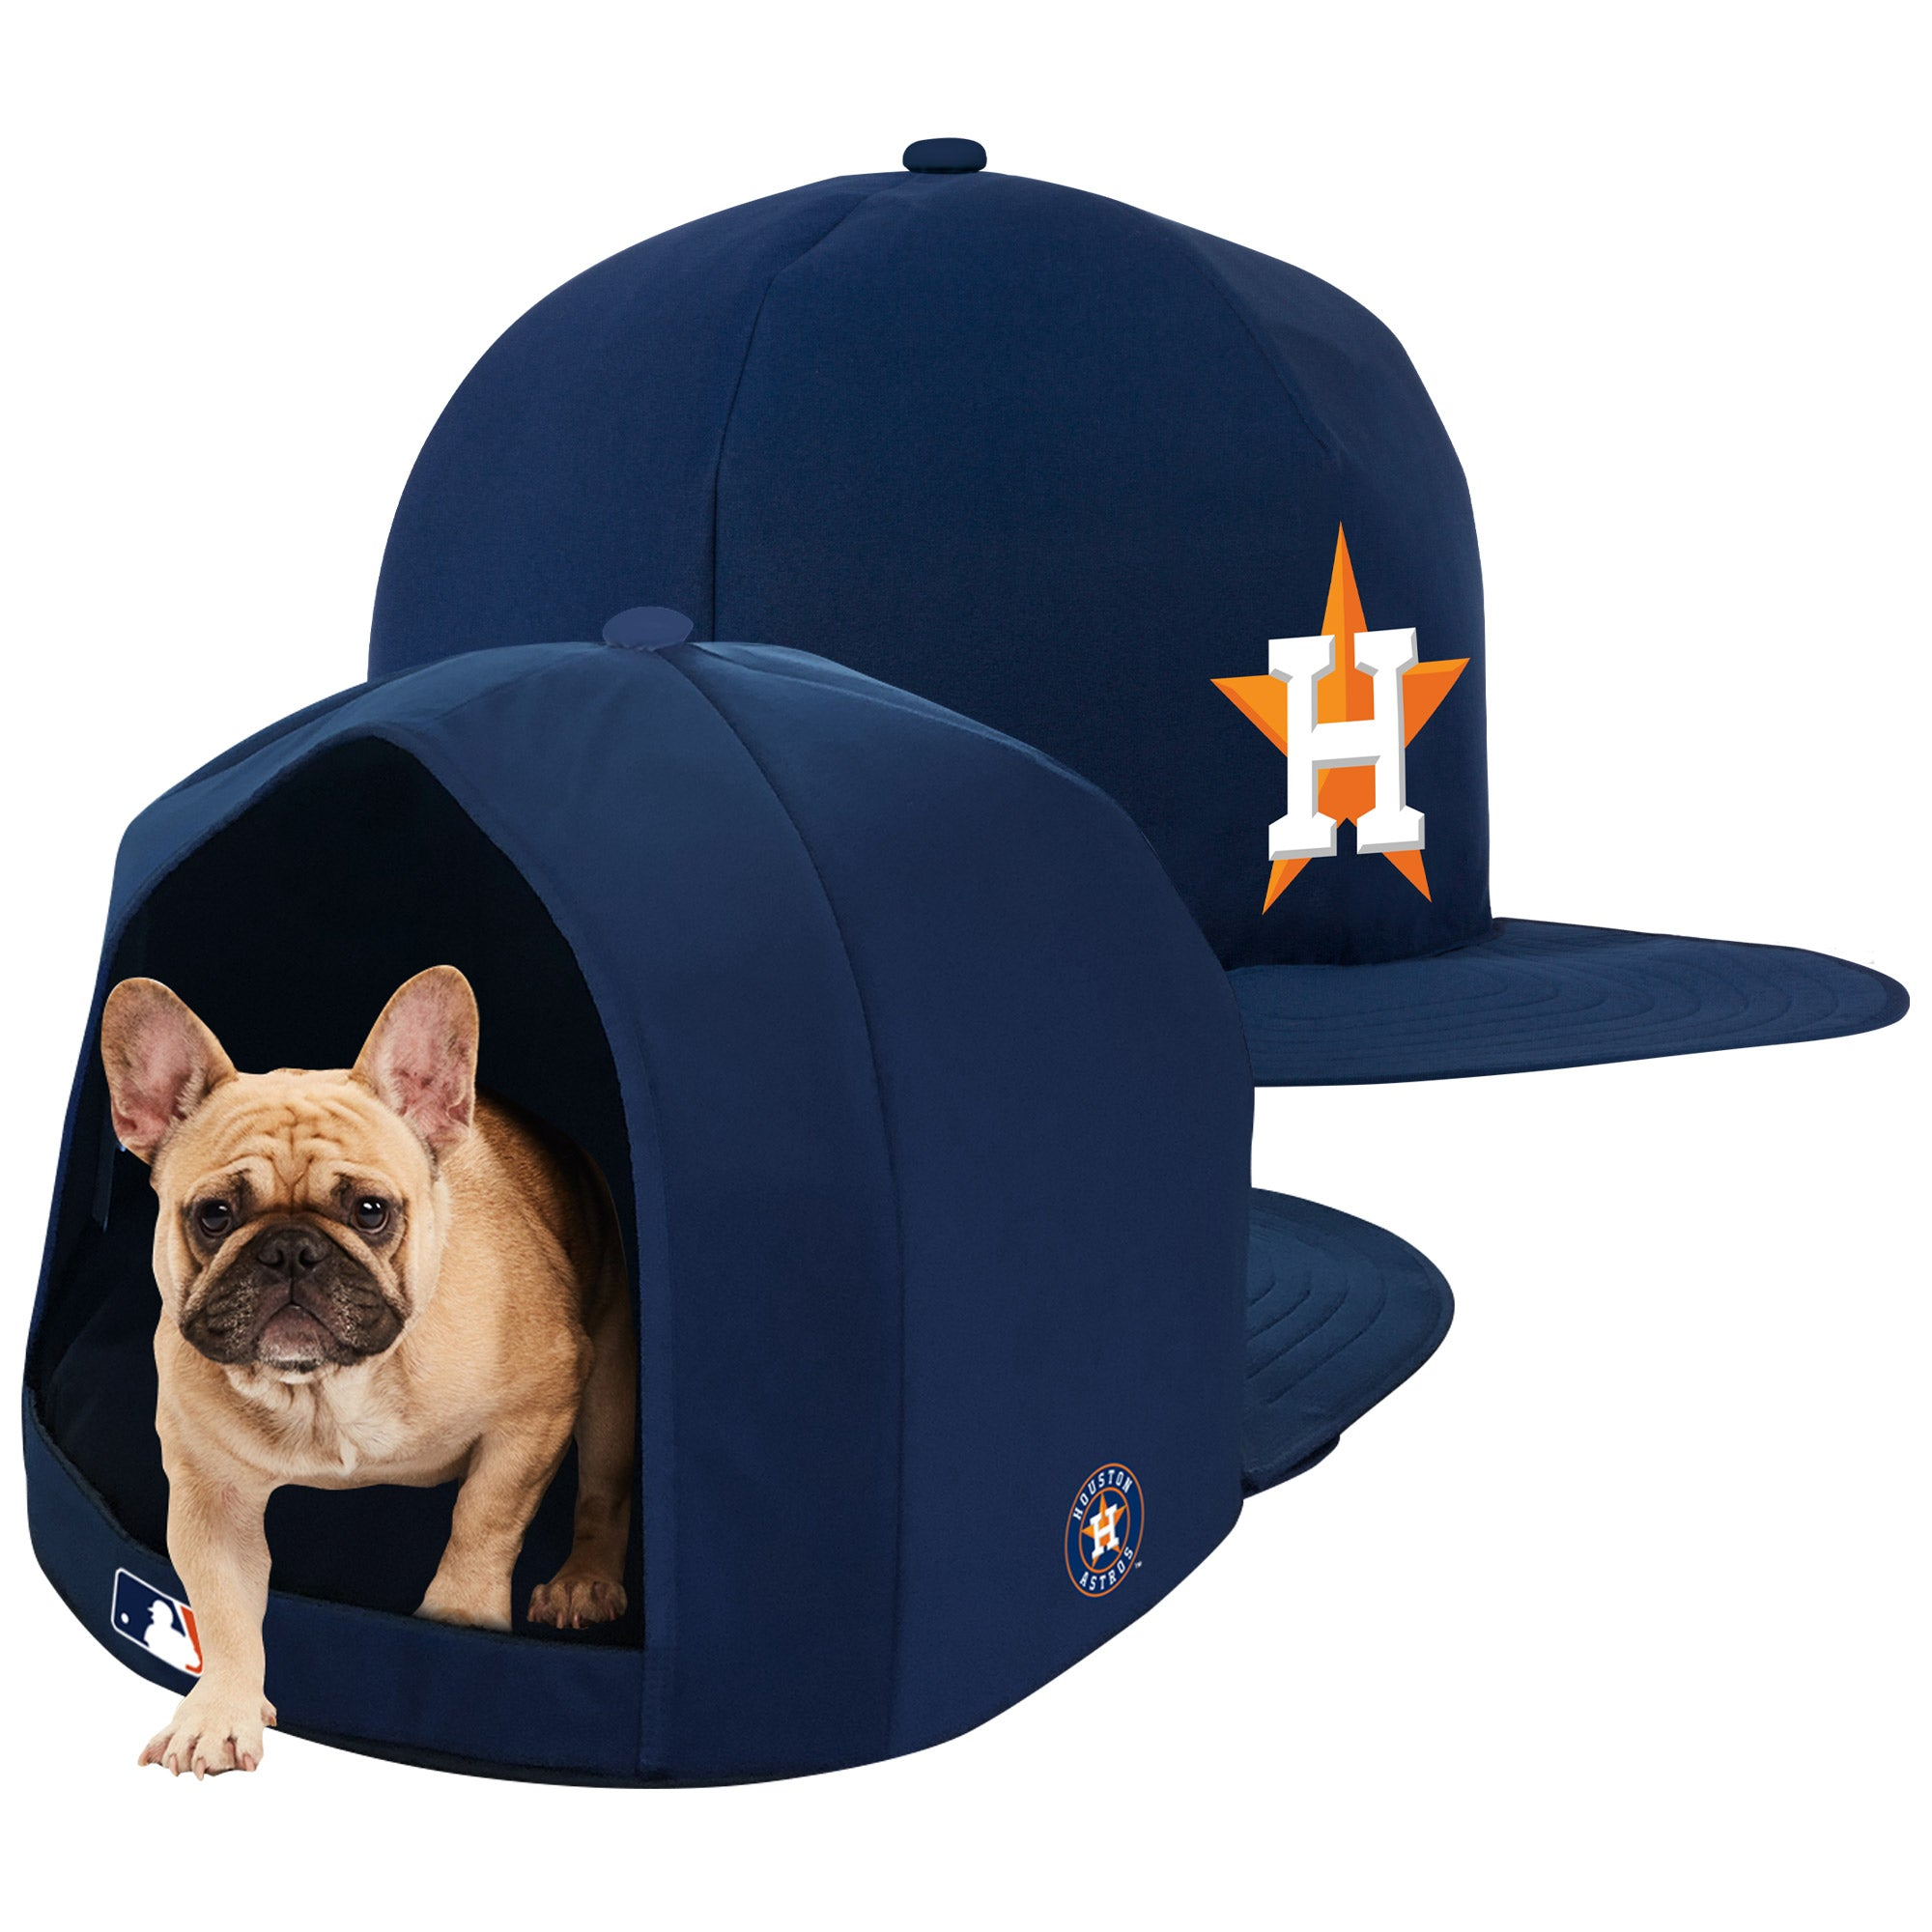 Houston Astros Nap Cap Plush Dog Bed